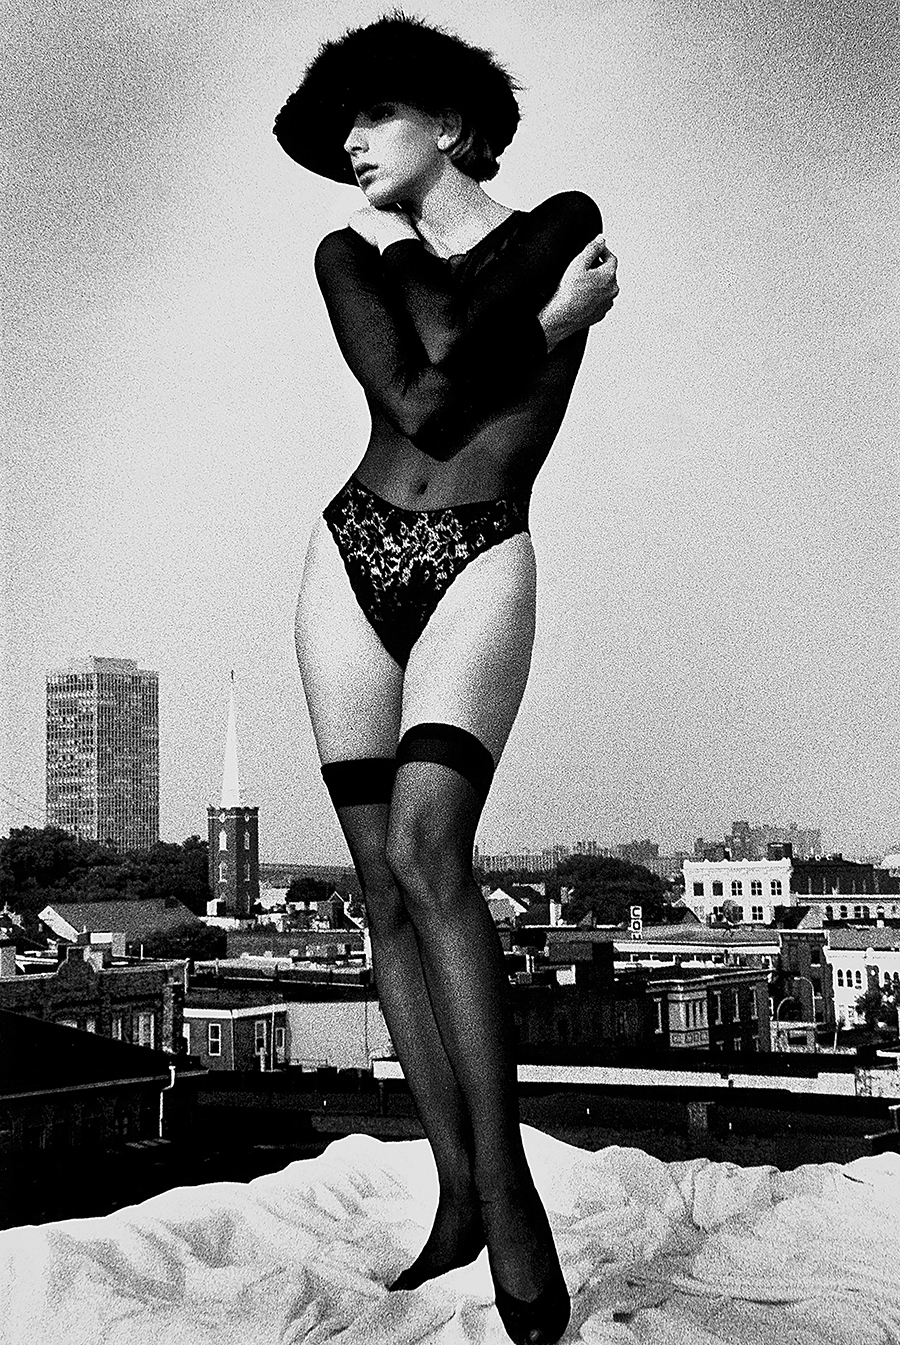 Tony_Ward_studio_fashion_photography_michelle_mallin_philly_girl_lingerie_hats_rooftops_sexy_women_portrait